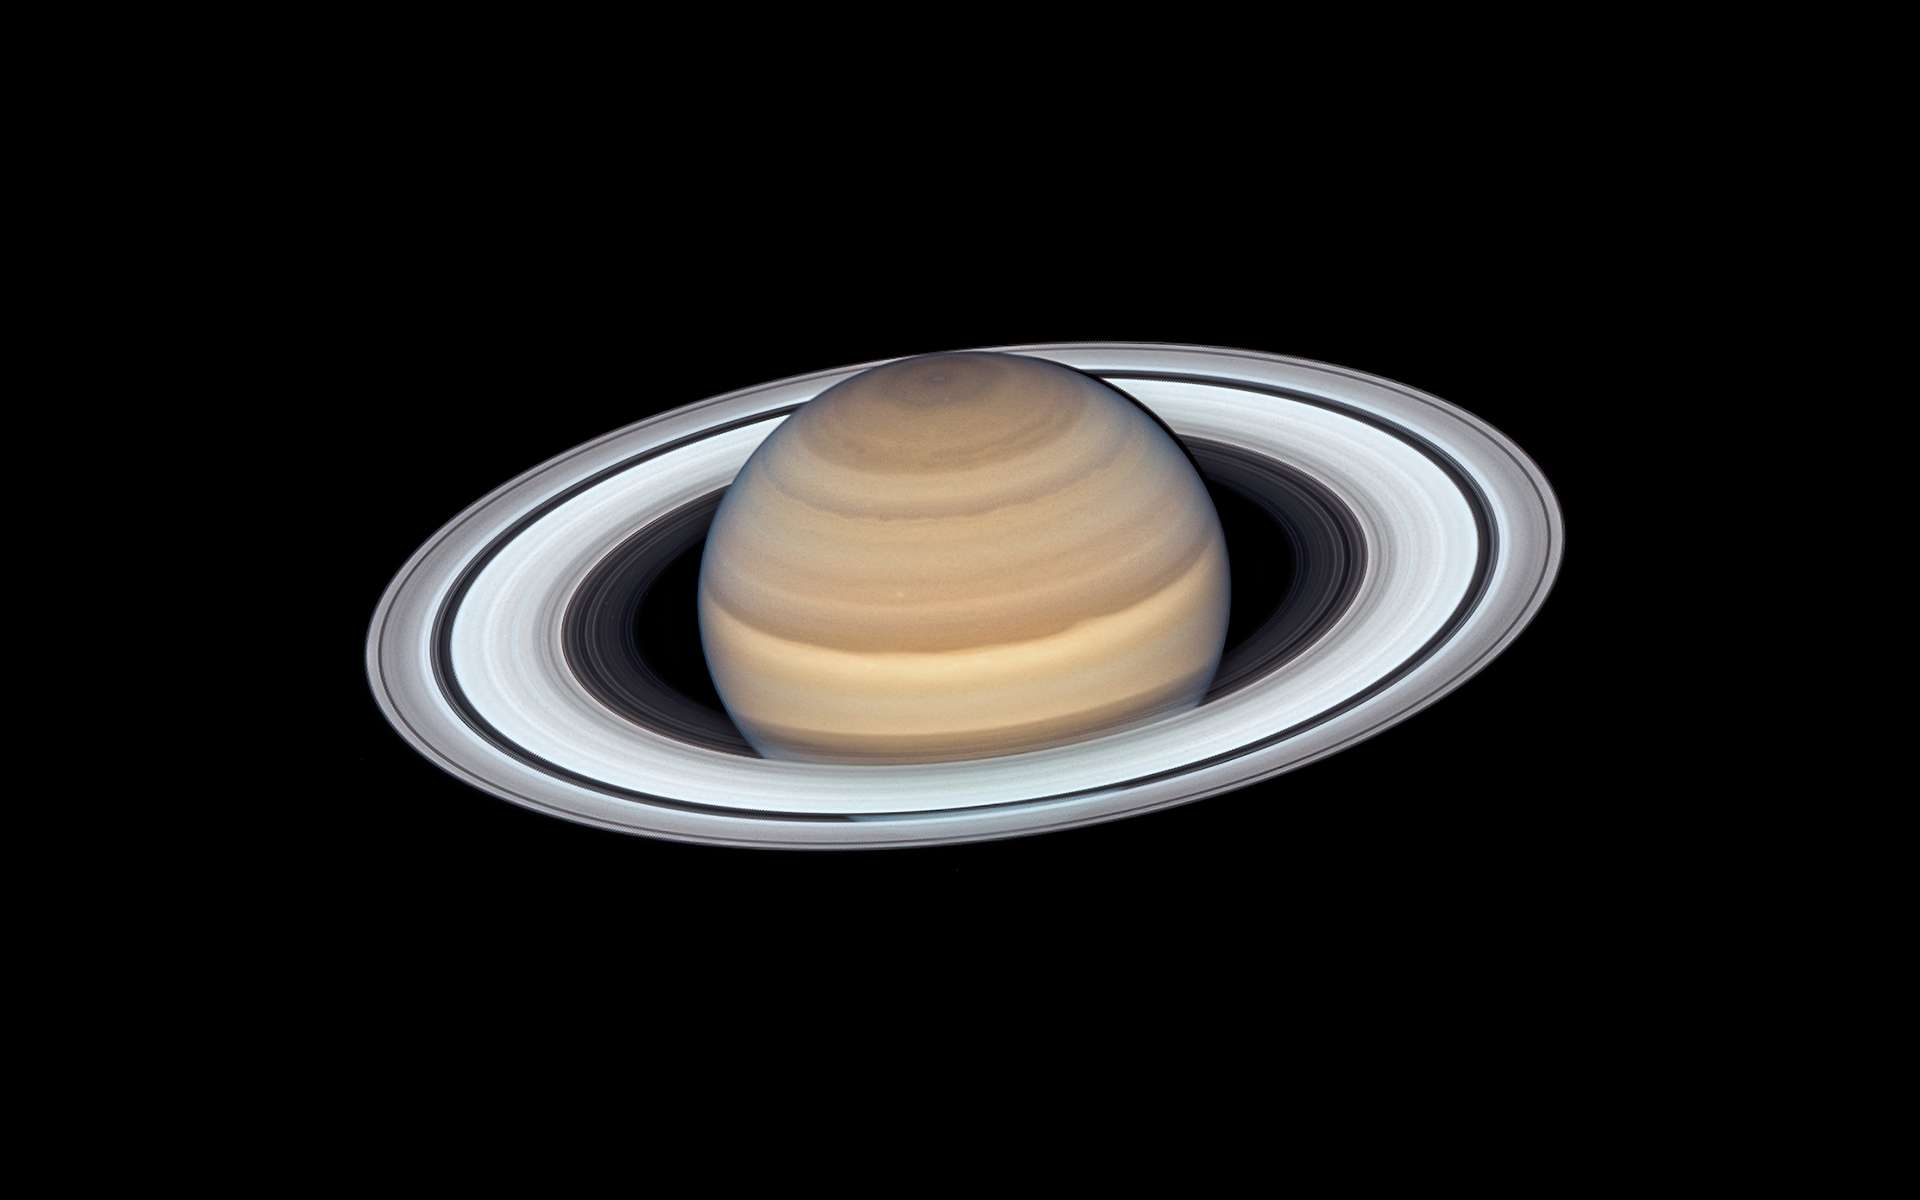 Saturne vue par le télescope spatial Hubble lorsqu'elle était au plus de la Terre le 20 juin 2019. © Nasa, ESA, A. Simon (Goddard Space Flight Center), et M.H. Wong (University of California, Berkeley)